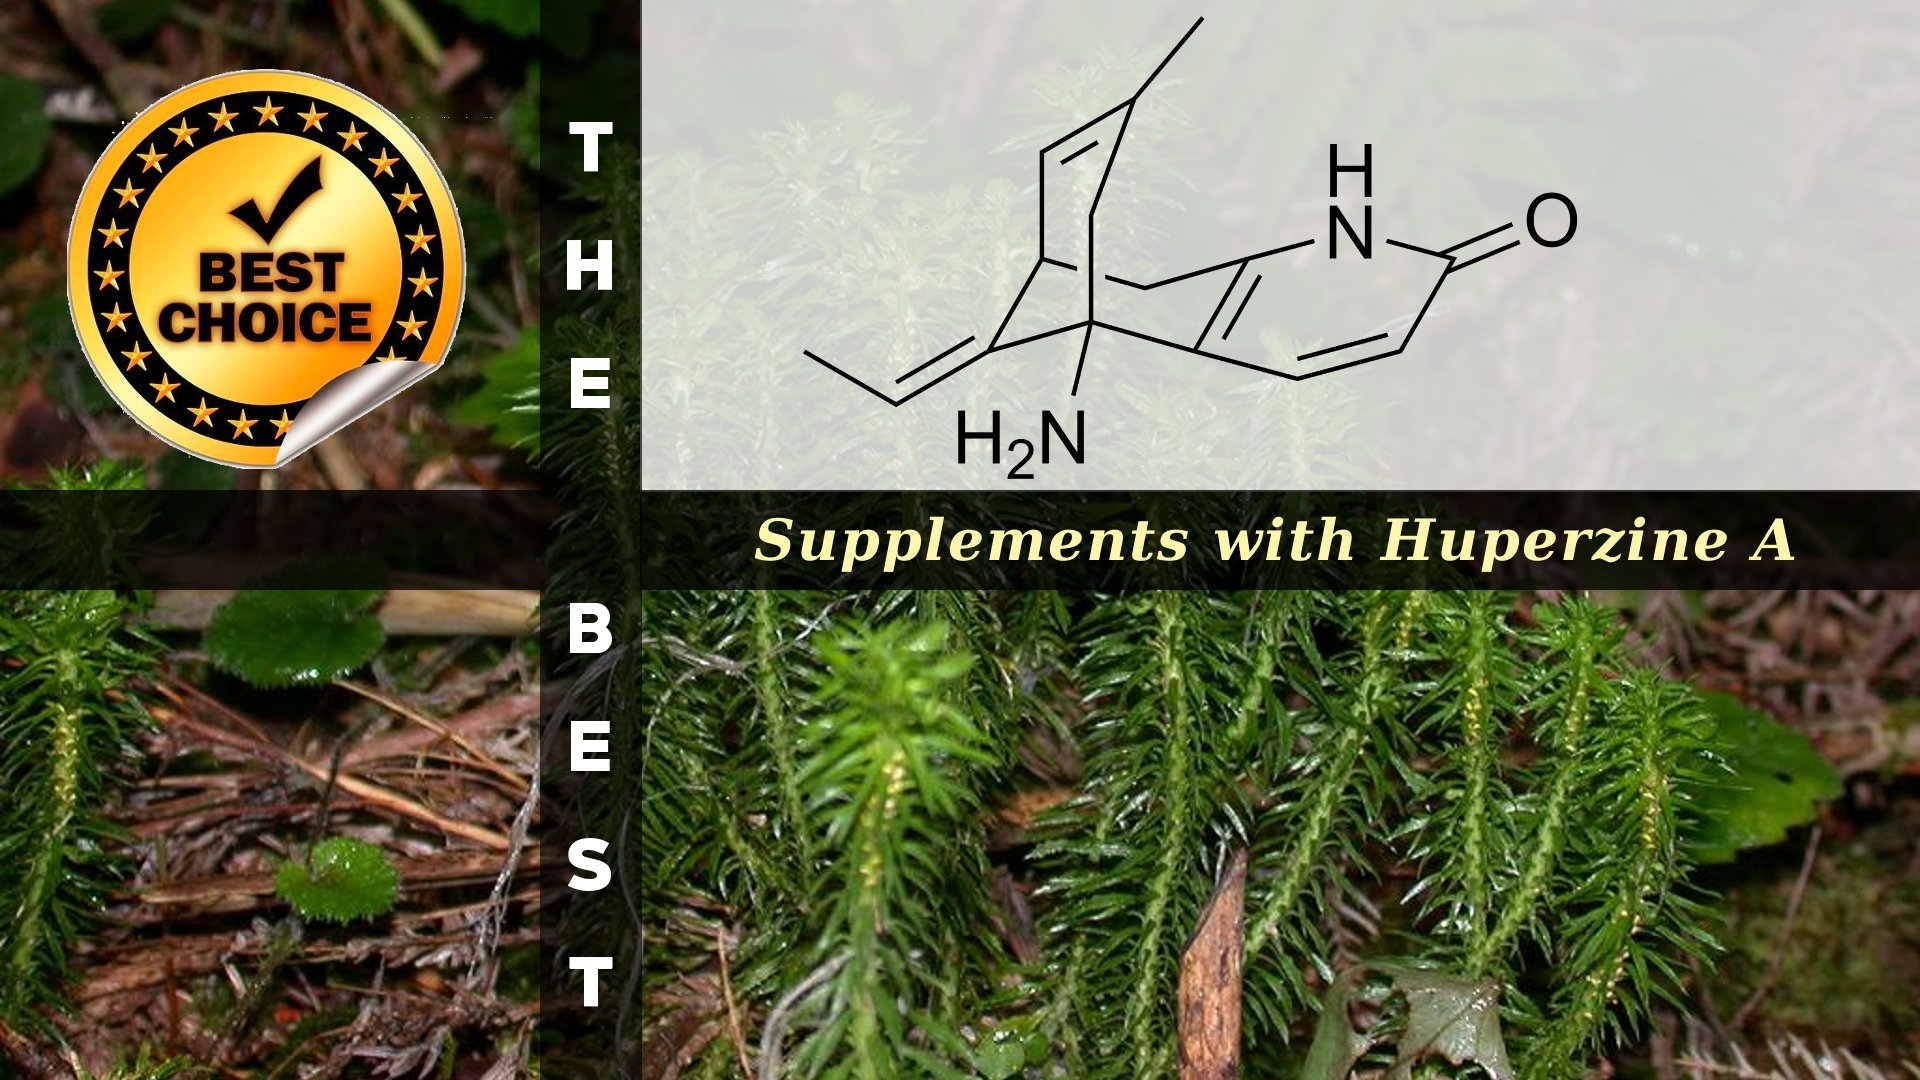 The Supplements with Huperzine A